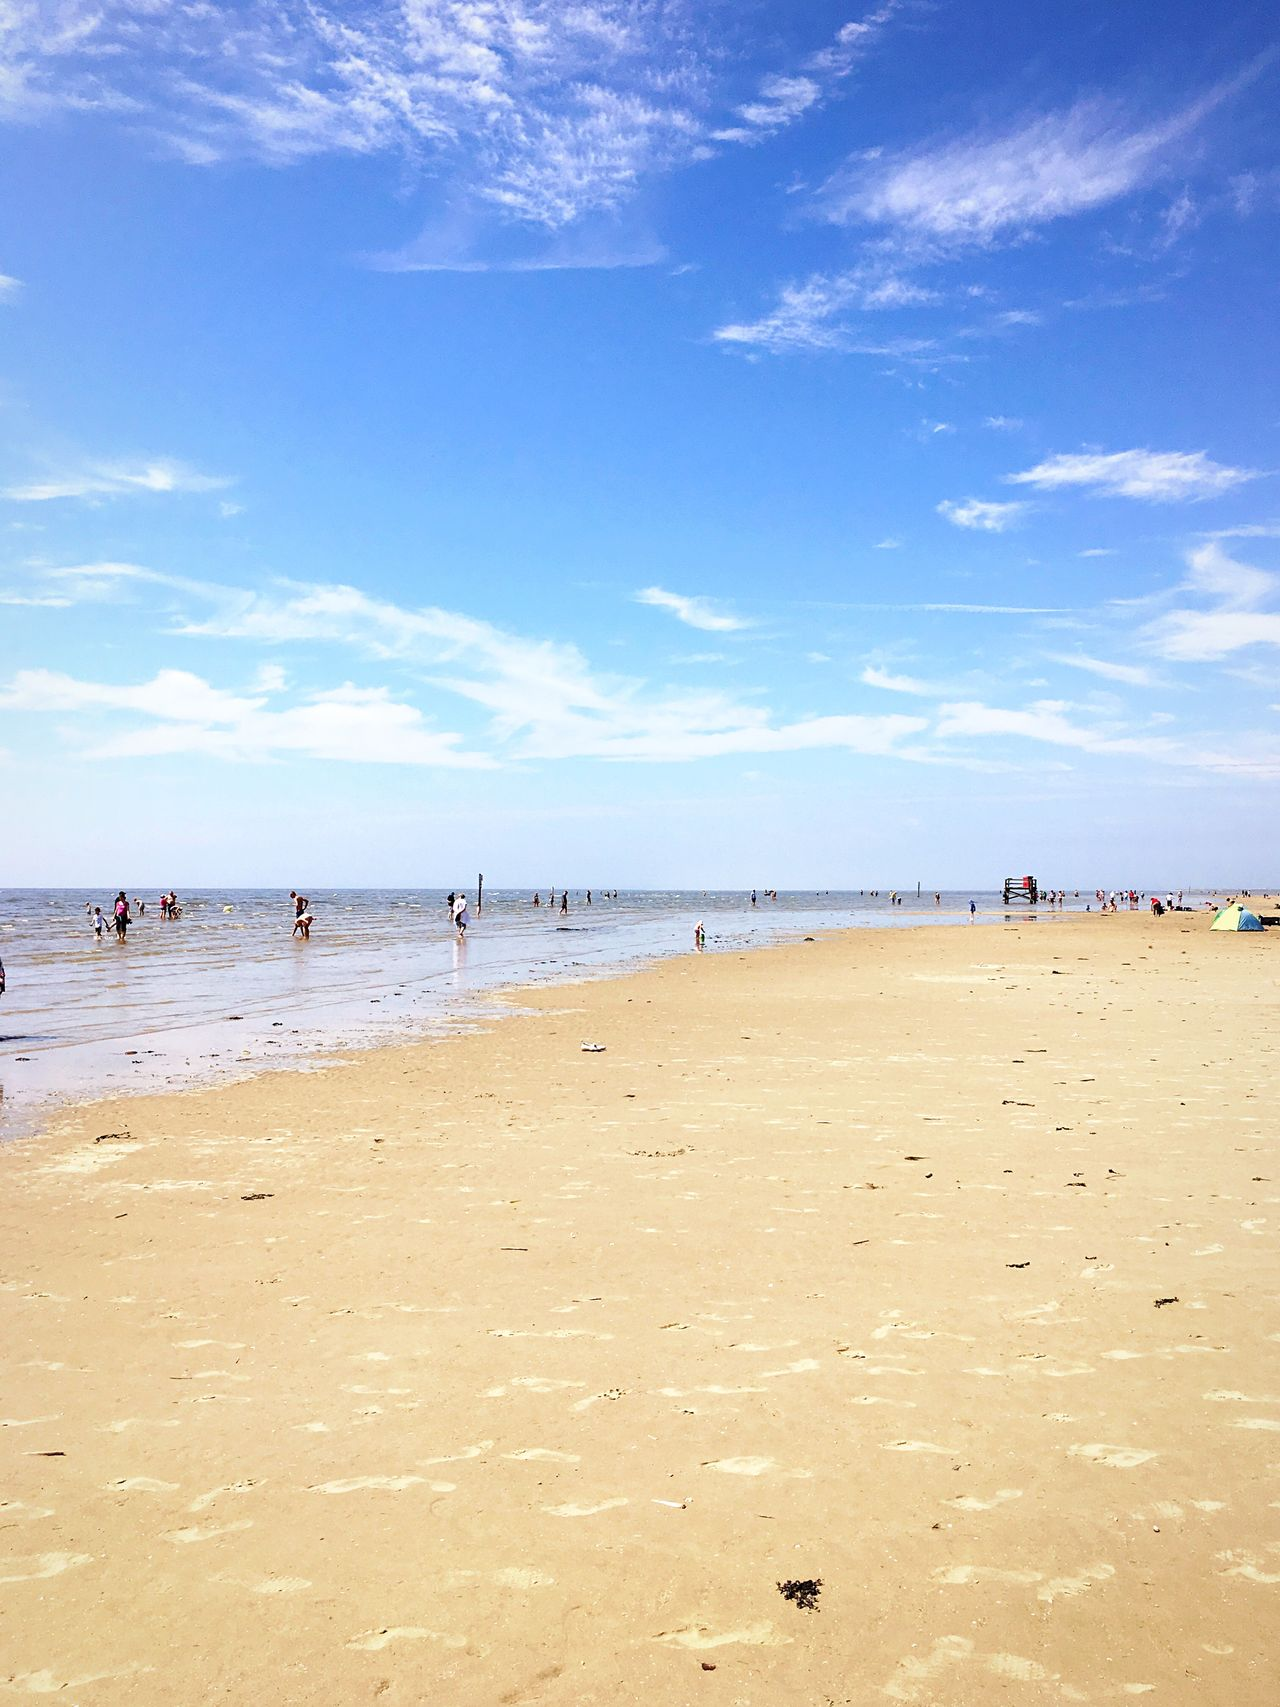 Beach Sand Sea Water Sky Scenics Day Nature Beauty In Nature Cloud - Sky Vacations Tranquility Tranquil Scene Outdoors Horizon Over Water Blue Summer Real People Large Group Of People People